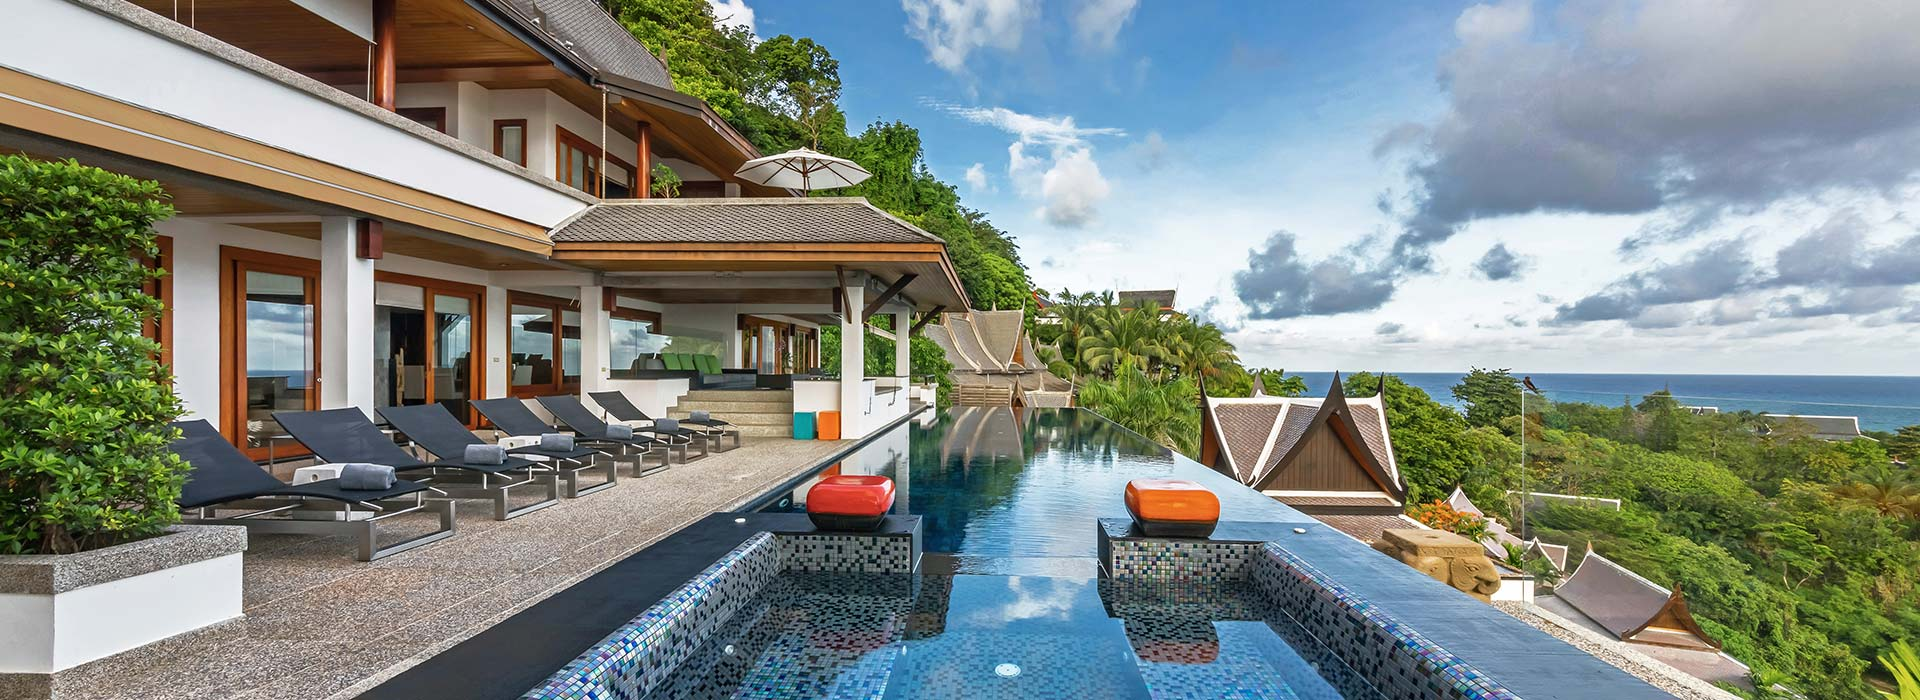 Villa Yang Som 5 Bedrooms<br>with private pool